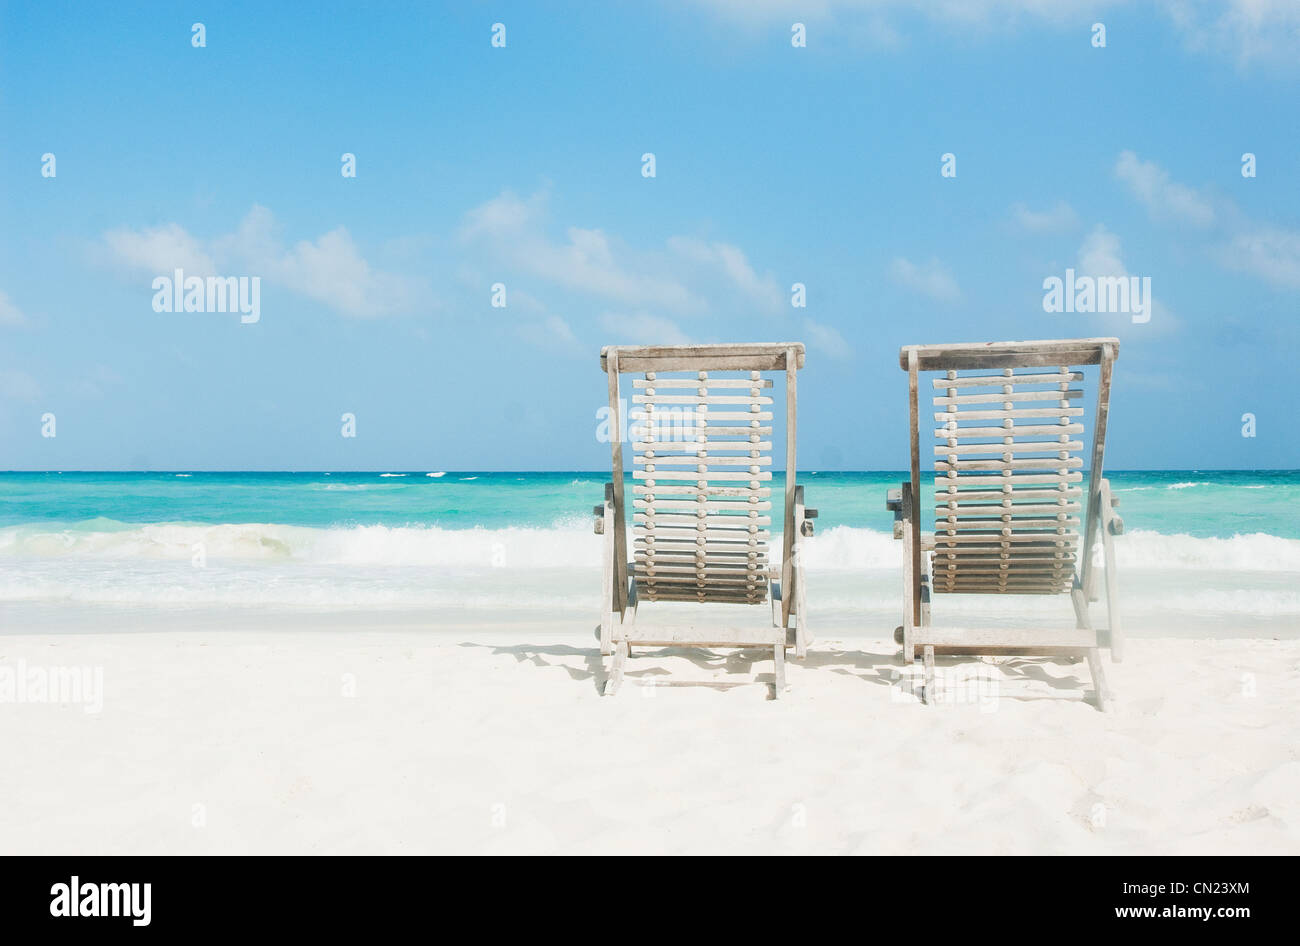 Two sun loungers on beach, Tulum, Mexico - Stock Image